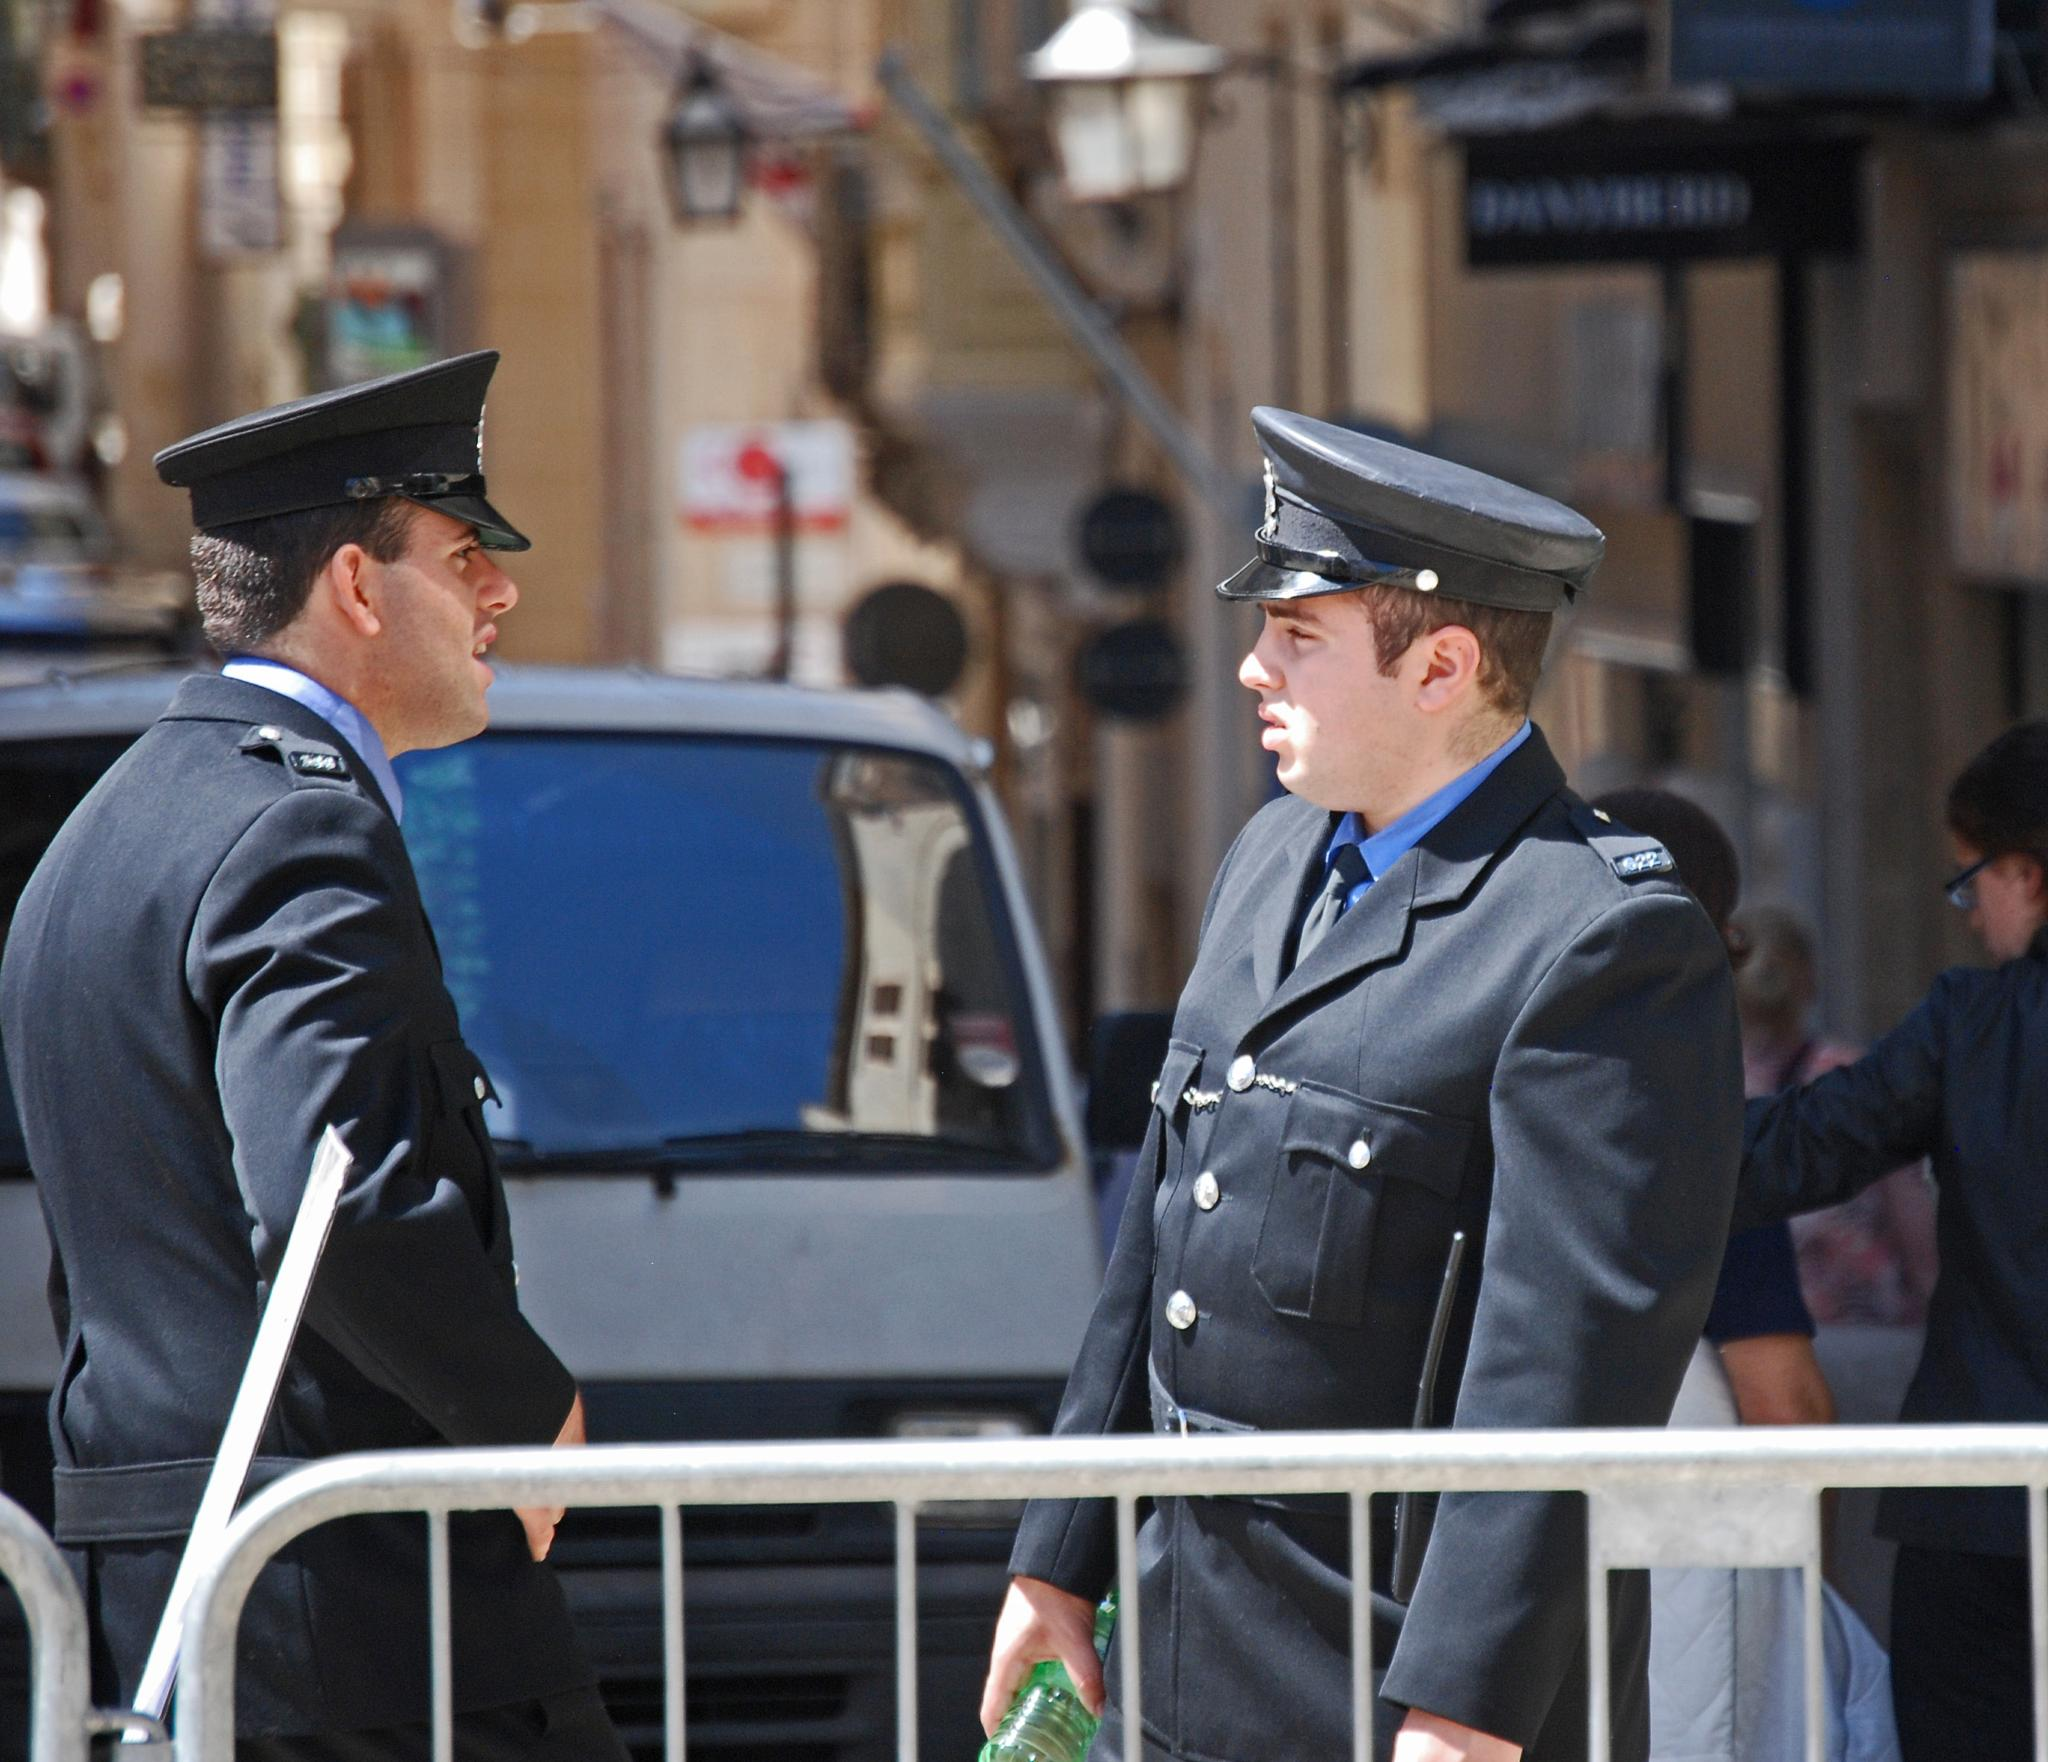 The forces of order in Valetta, Malta by leena.ekroth